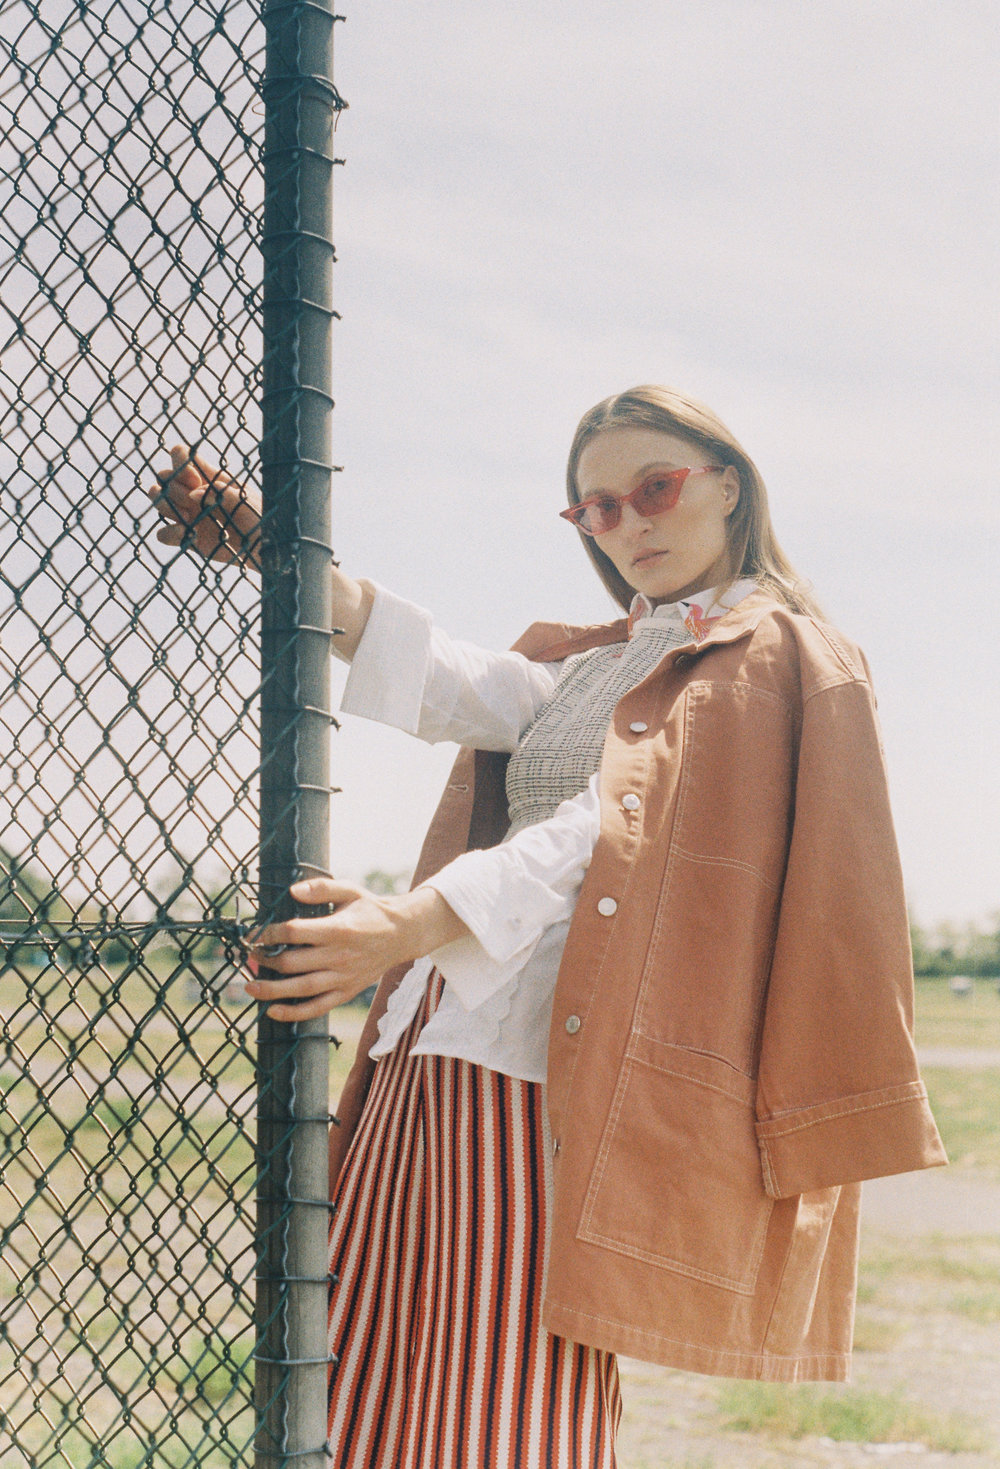 ACC/Sunglasses: Stylist's Own  Jacket&Skirt: Pull&Bear  Blouse: The Extreme Collection  Knitweartop: Banana Republic